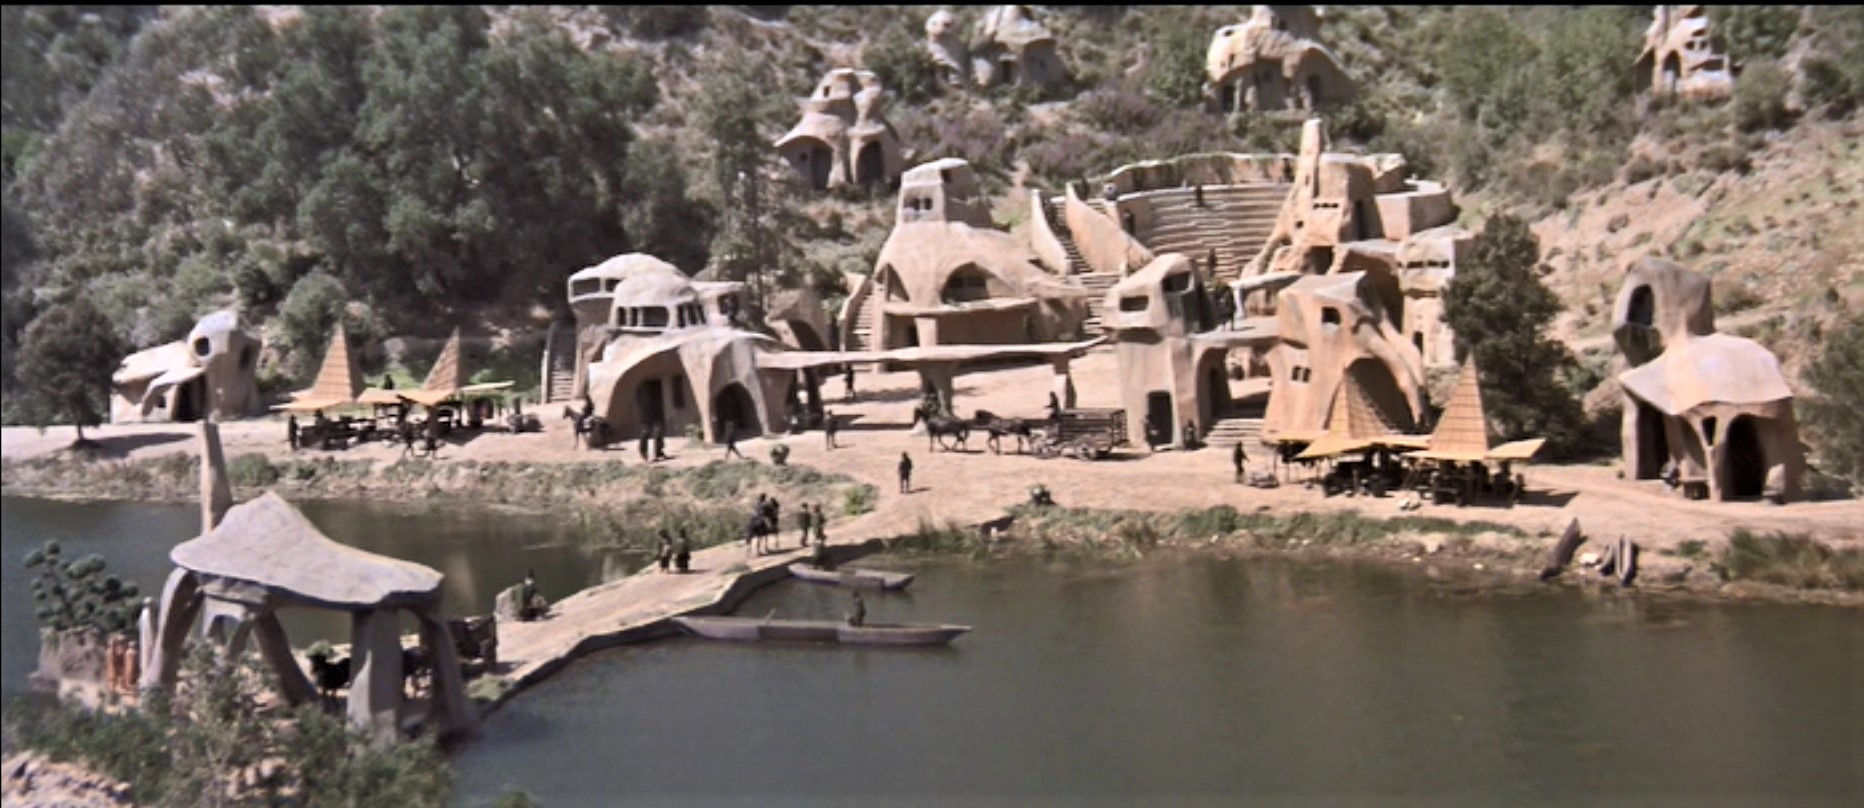 Planet of the Apes Village Set